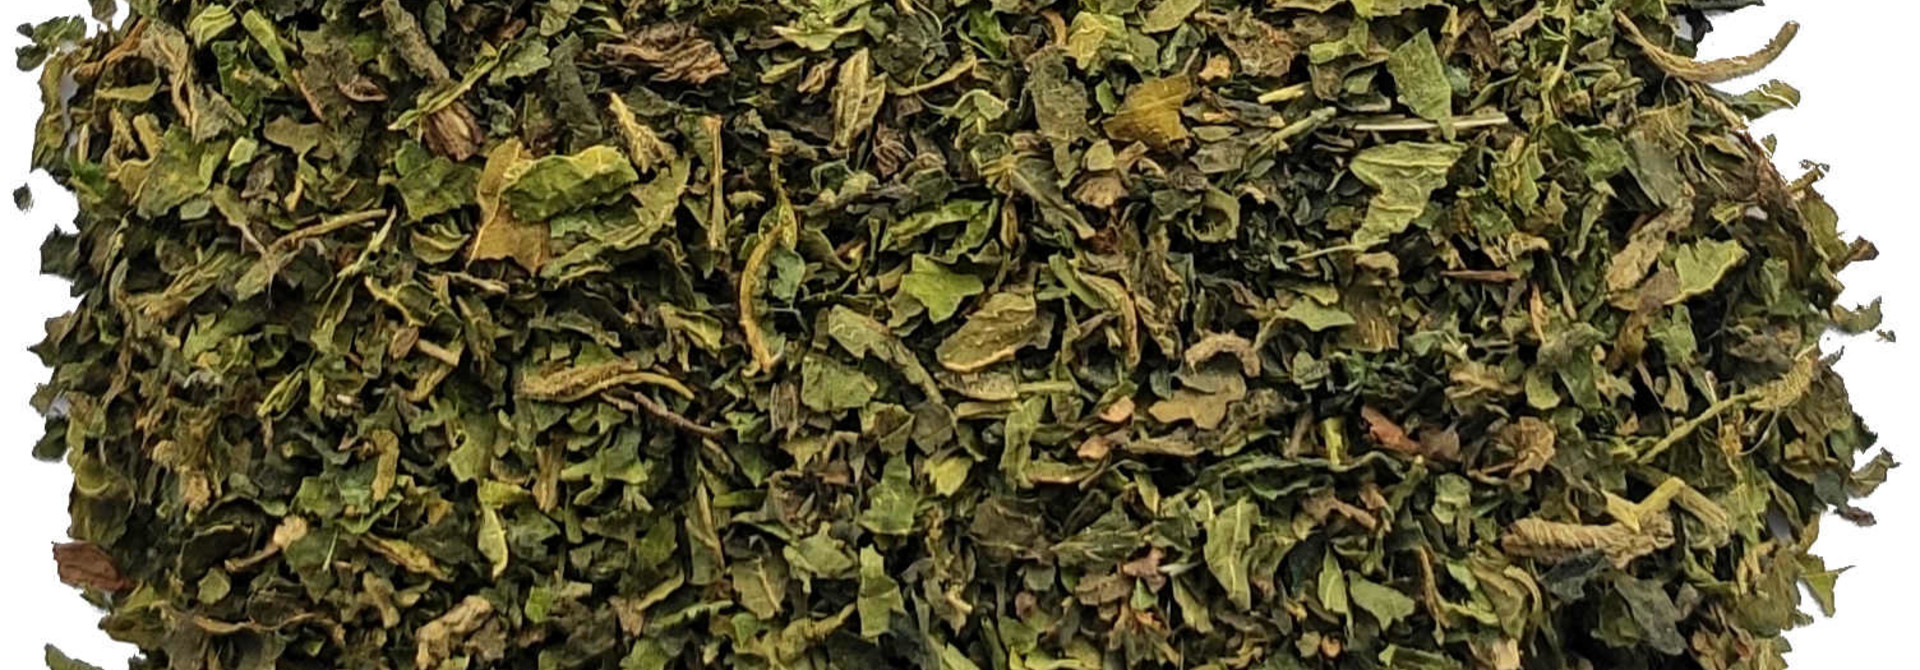 Tisane: Feuille d'ortie